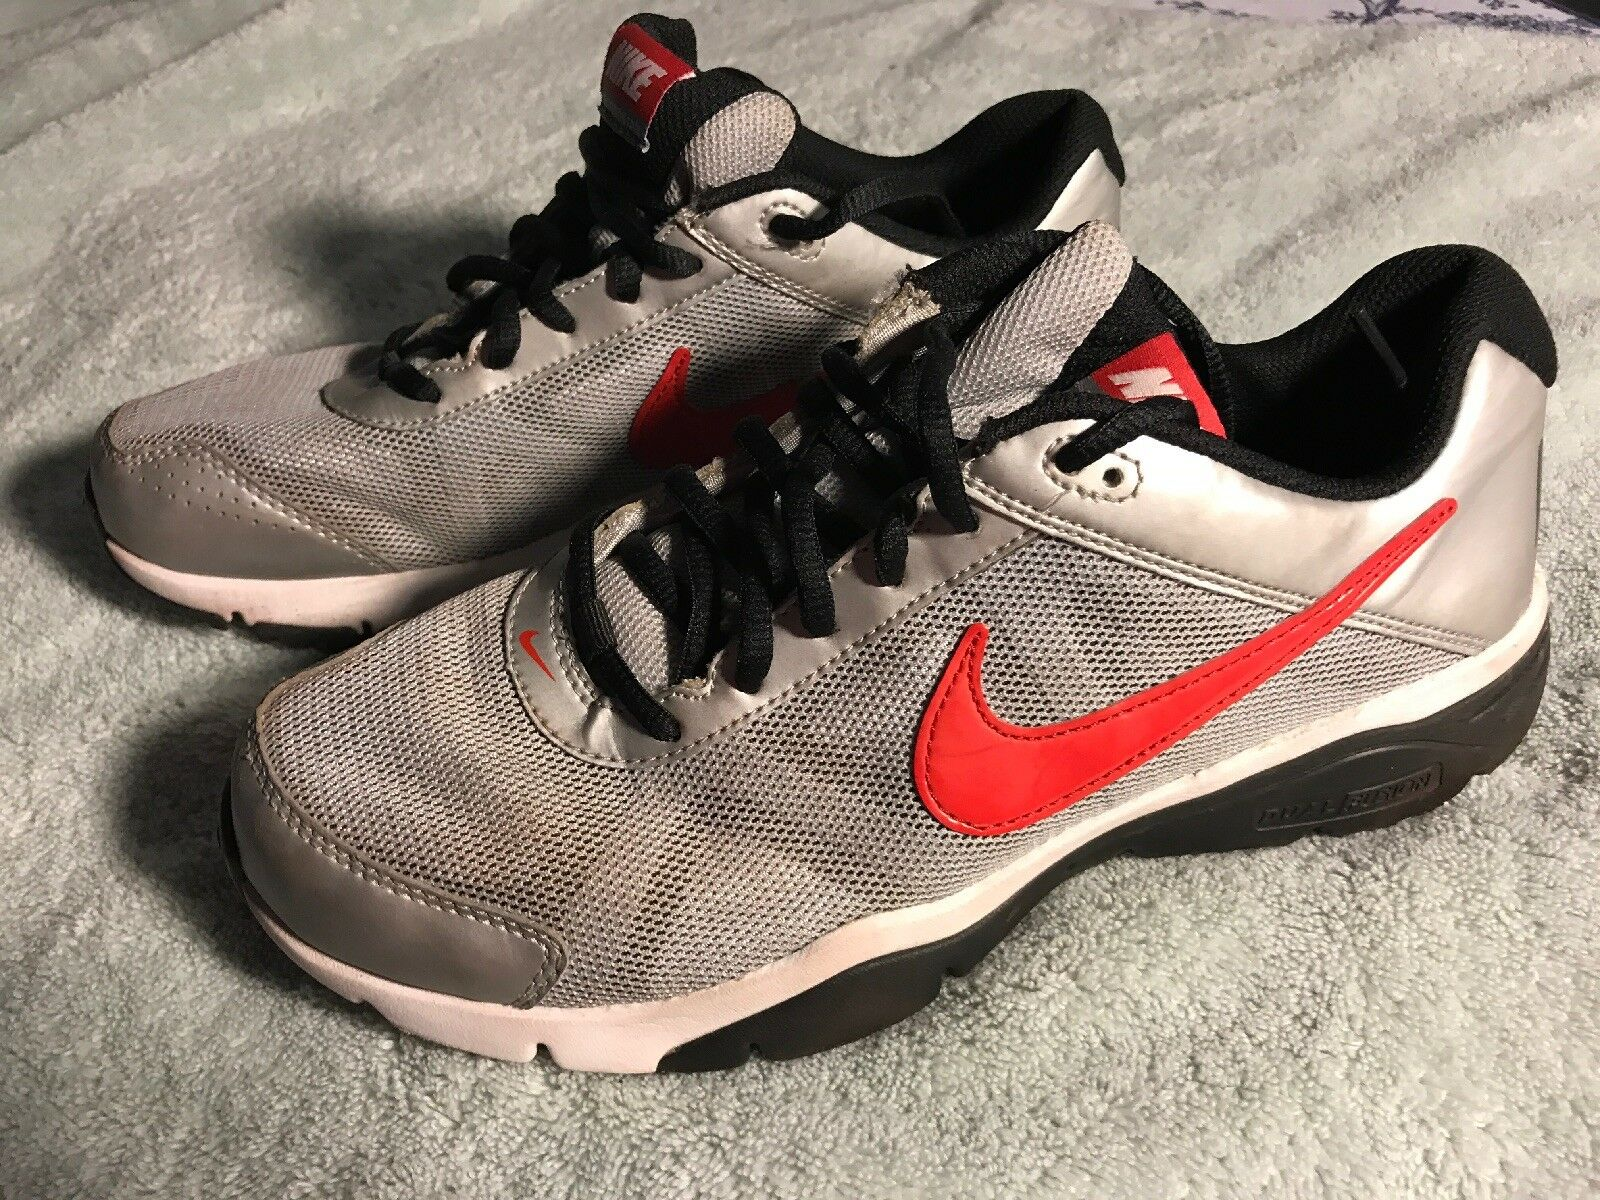 sale retailer 3fabd 40c76 Nike Nike Nike Dual Fusion TR 3 Mens Running Shoes SZ 7 Gray With Red Emblem